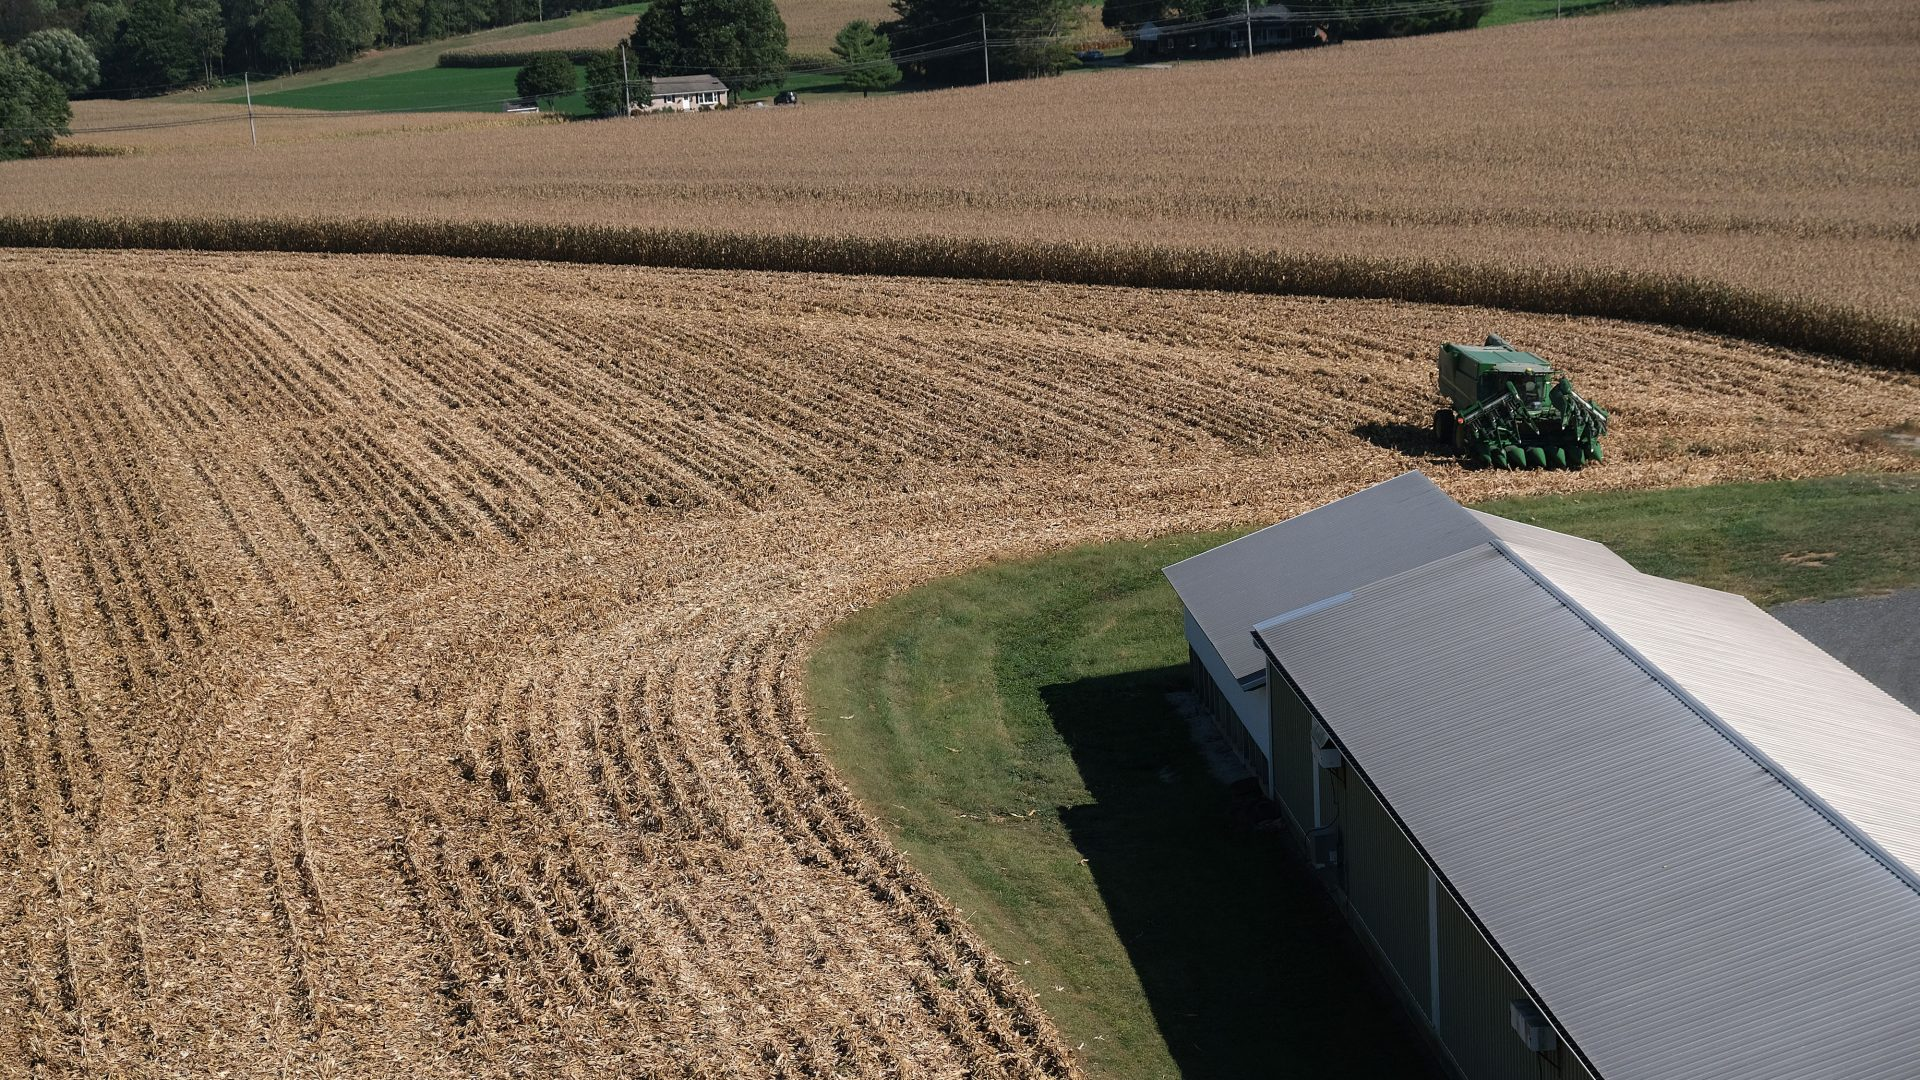 A look at the facility at Cairns Family Farm on Sept. 25, 2019, in Sadsbury Township, Pennsylvania.